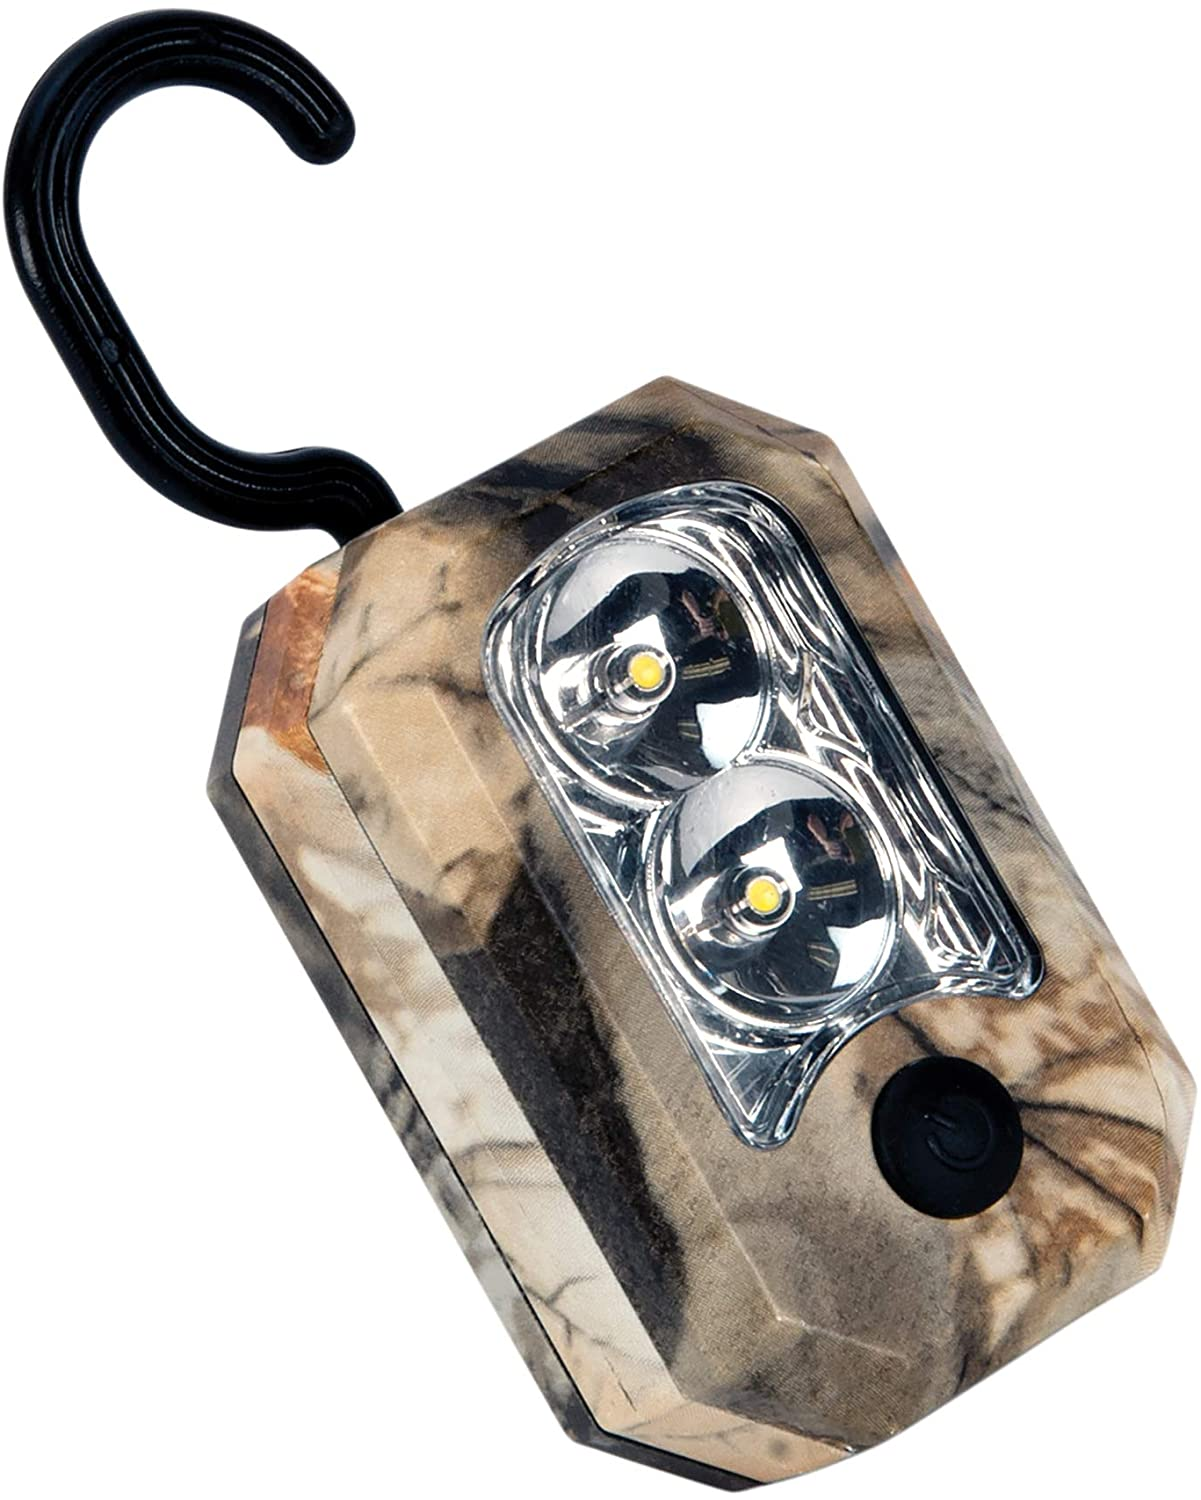 Performance Tool W2462 123 Lumen Camo Compact LED Work Light With Hook & Magnetic (Sold as 1 Flashlight)